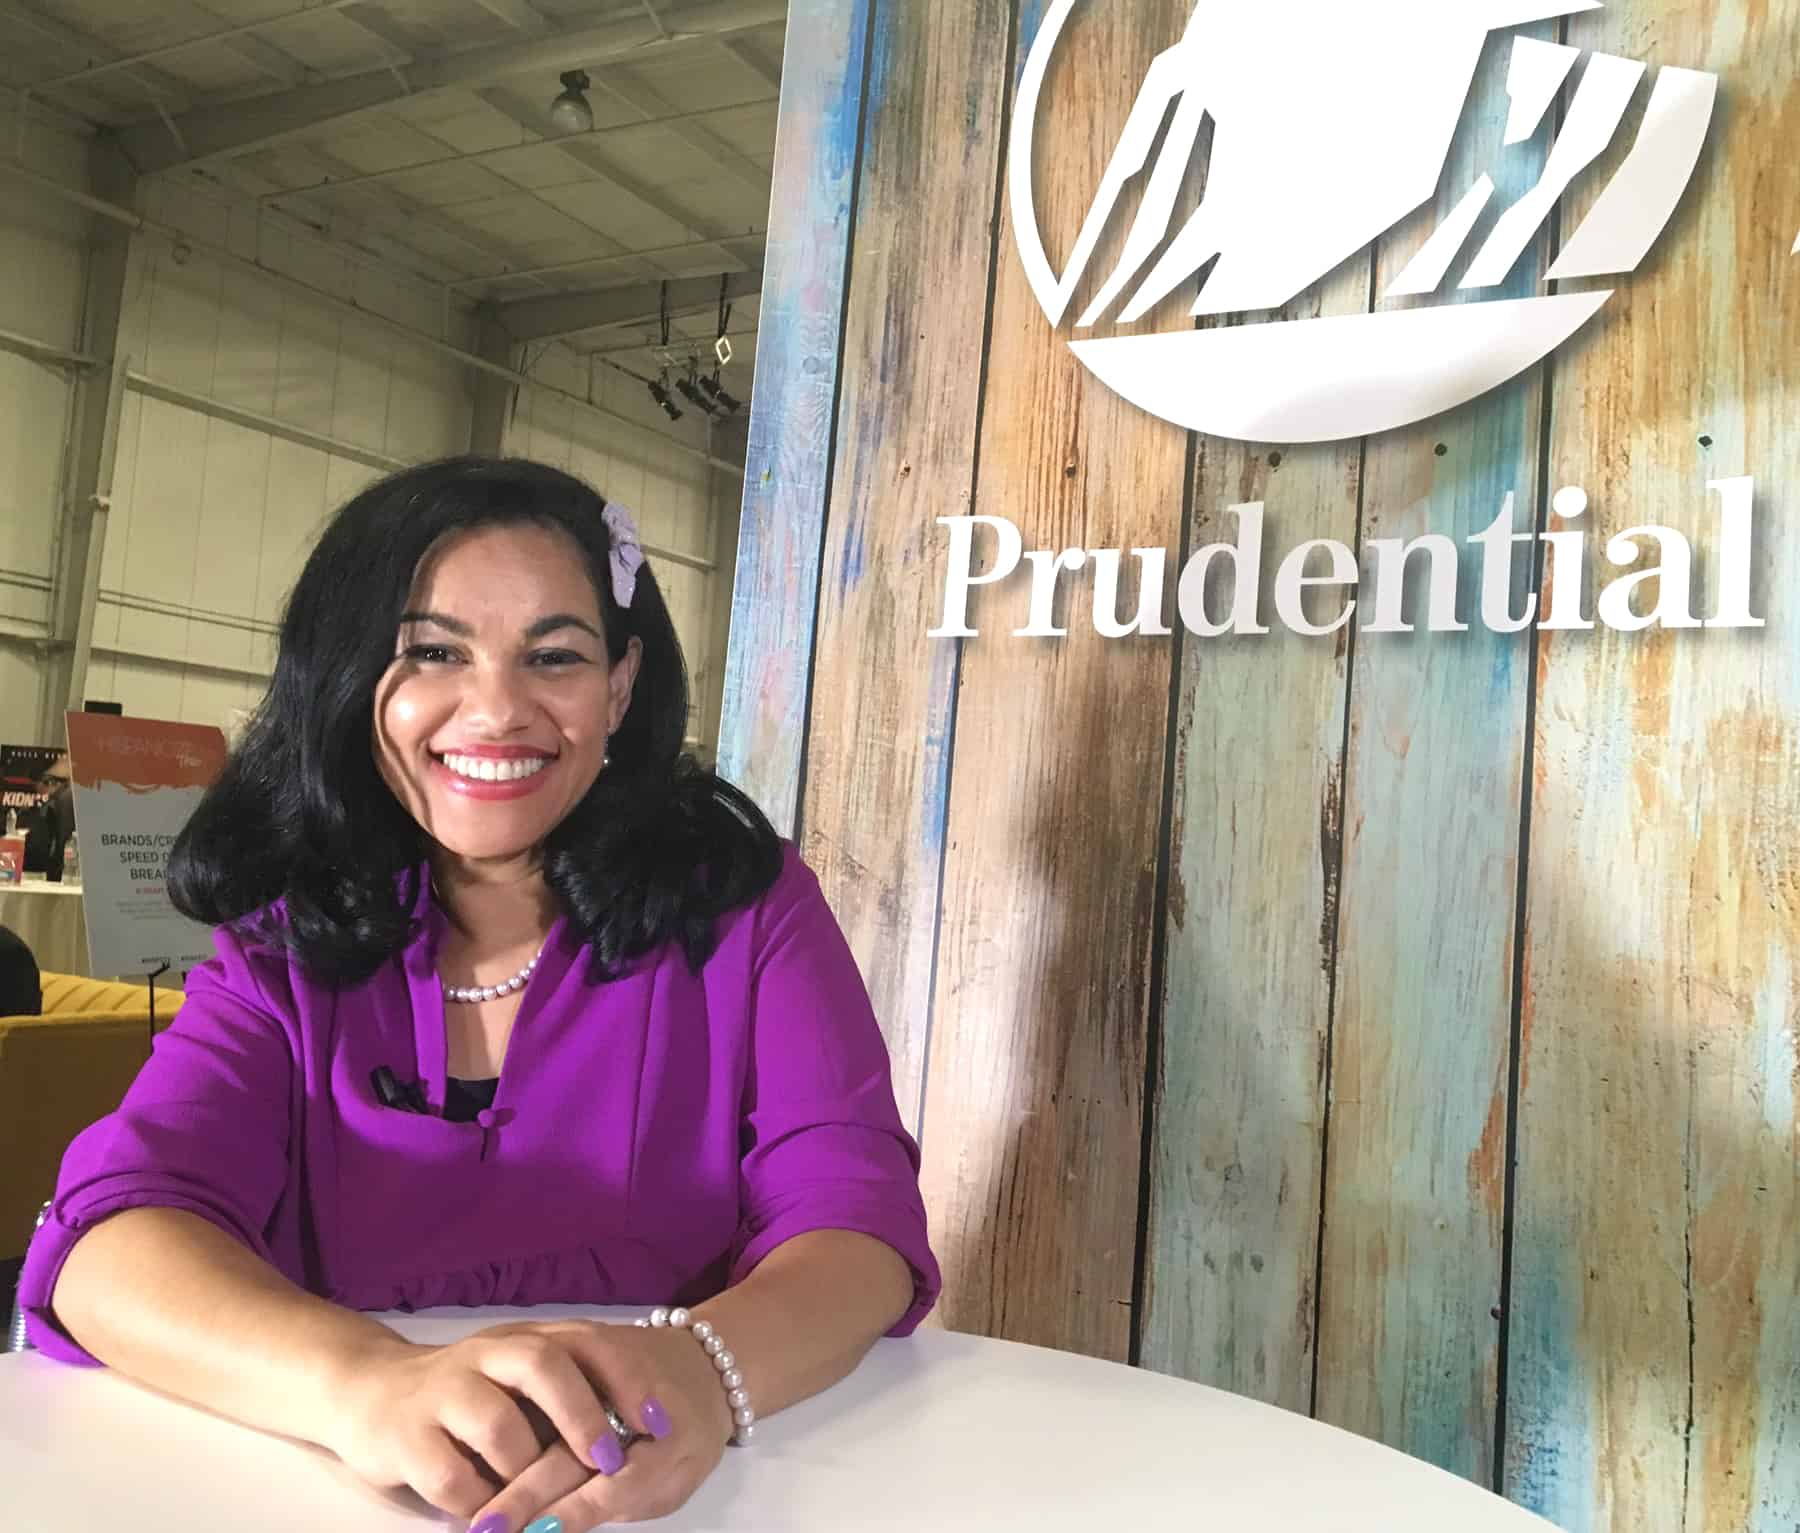 Influencer Elayna Fernandez ~ The Positive MOM | Prudential Ambassador at Hispanicize Texas weekend in Houston